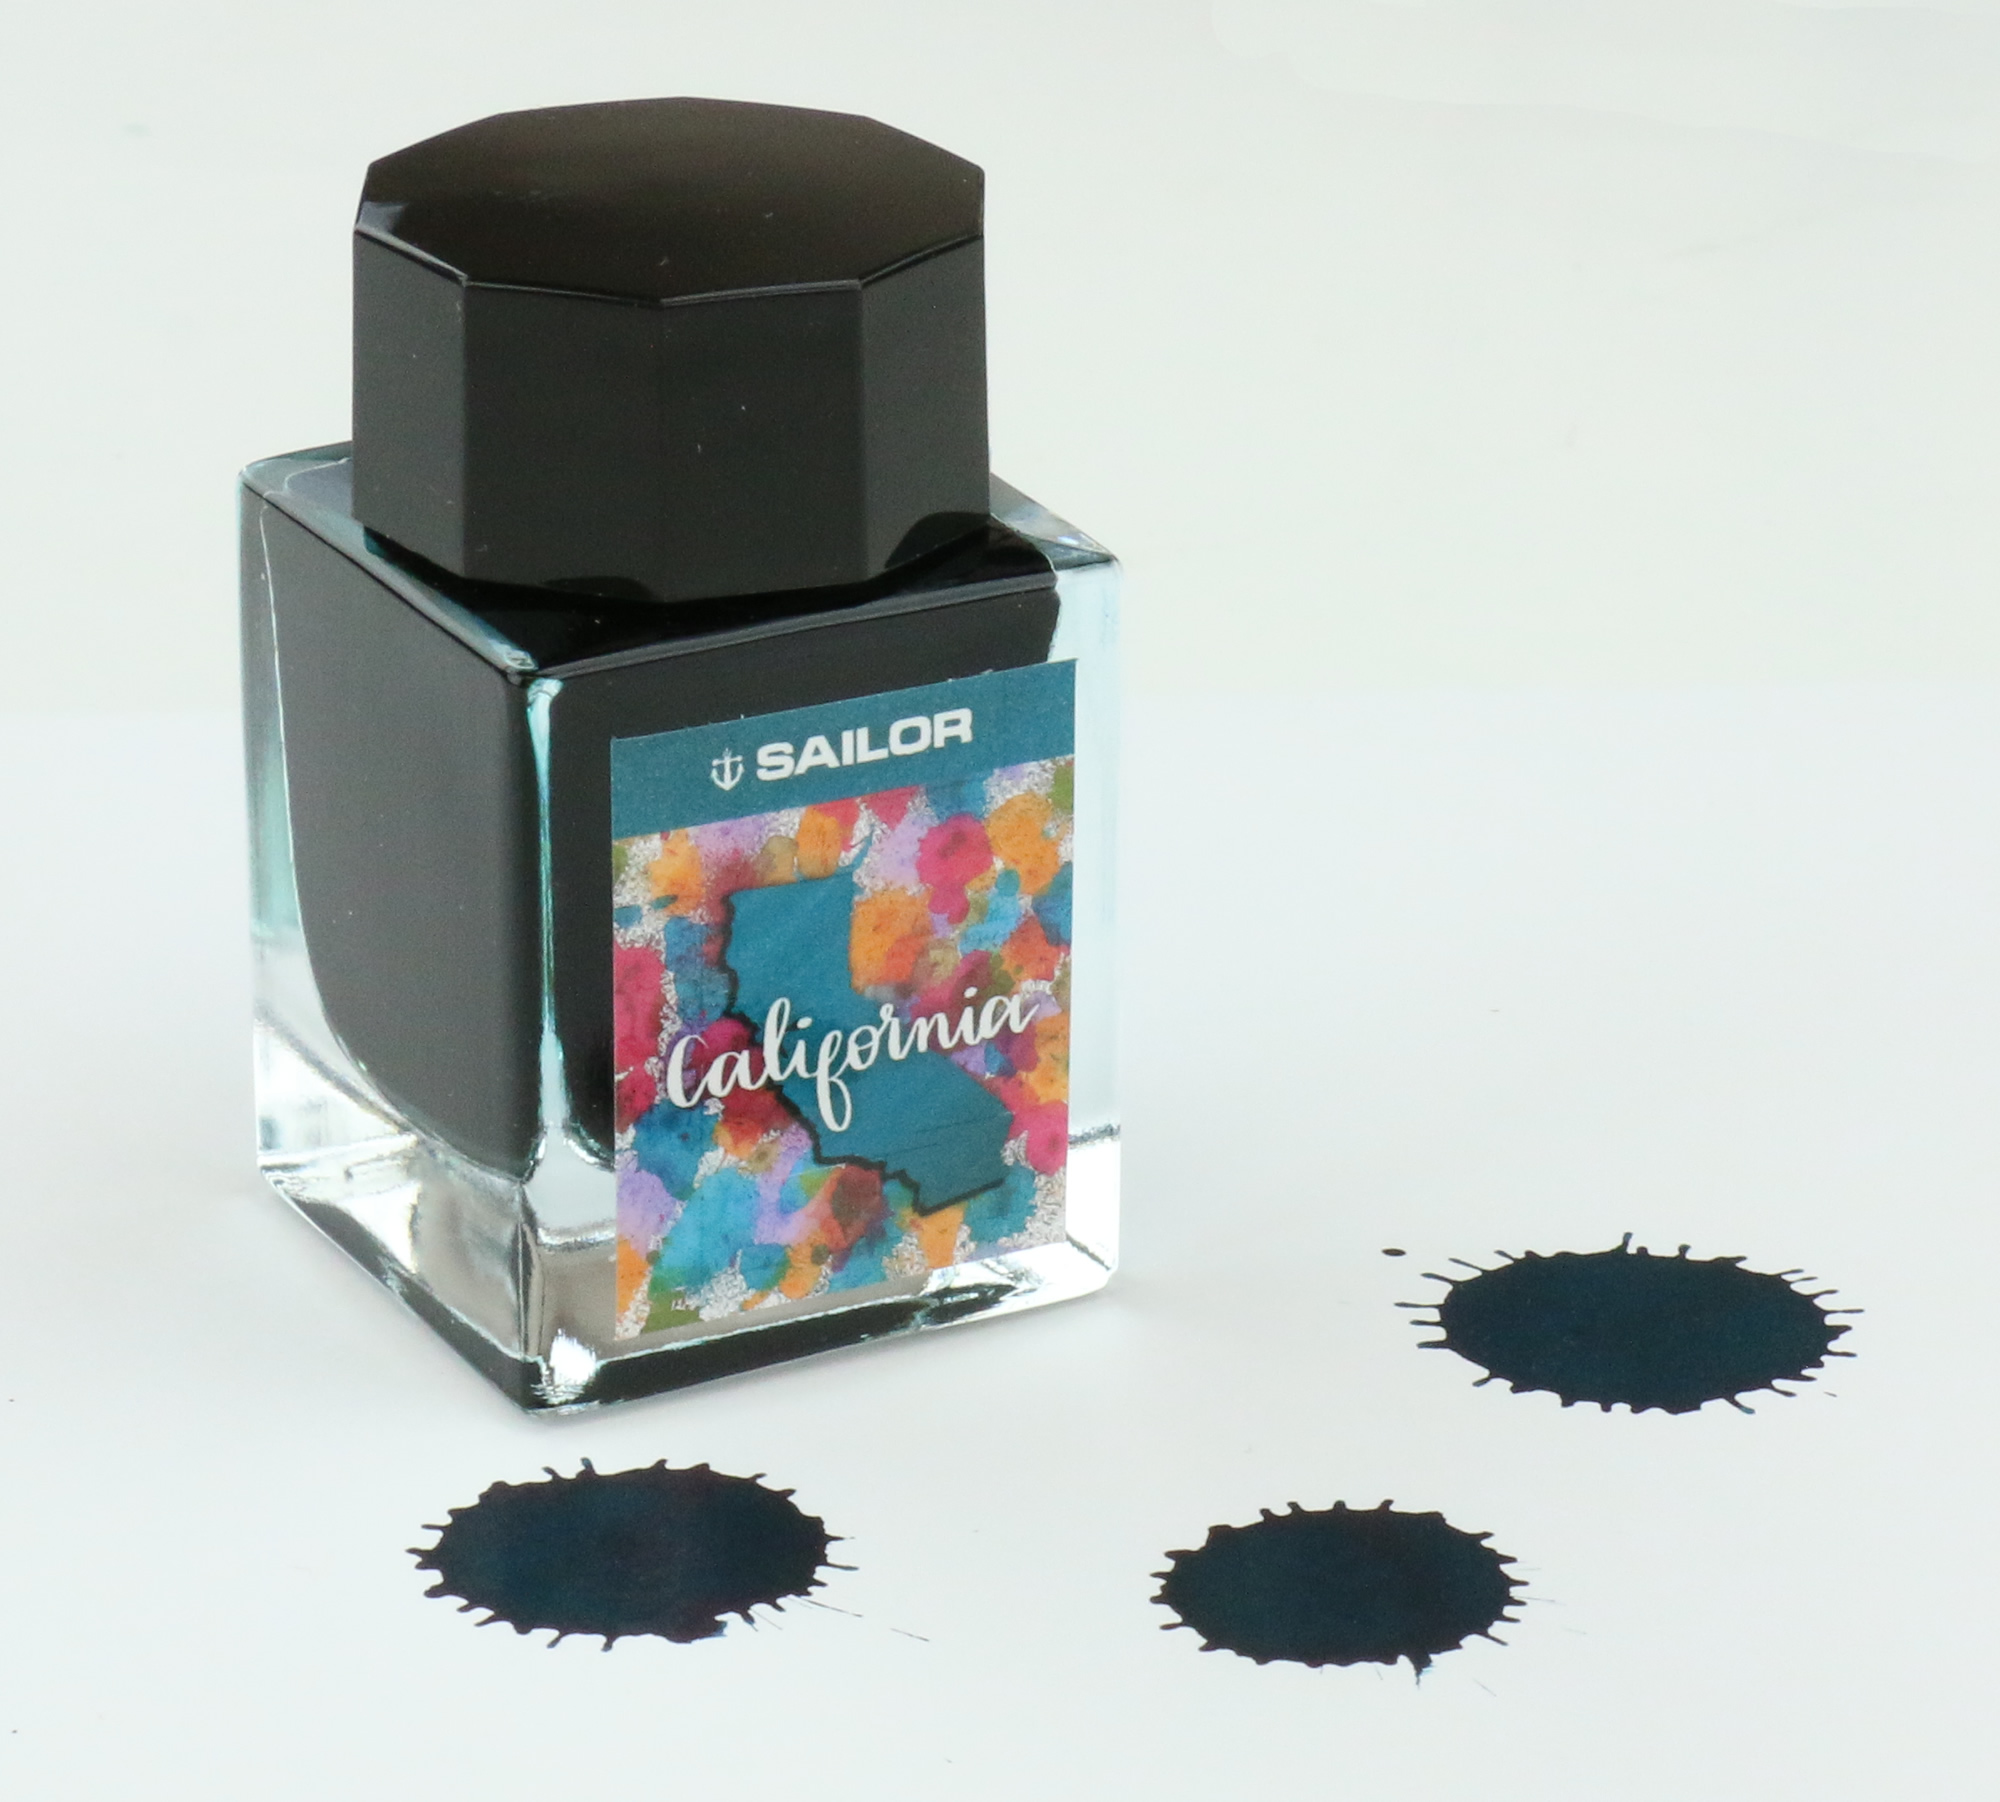 Sailor California Ink Review & Giveaway - Pen Chalet